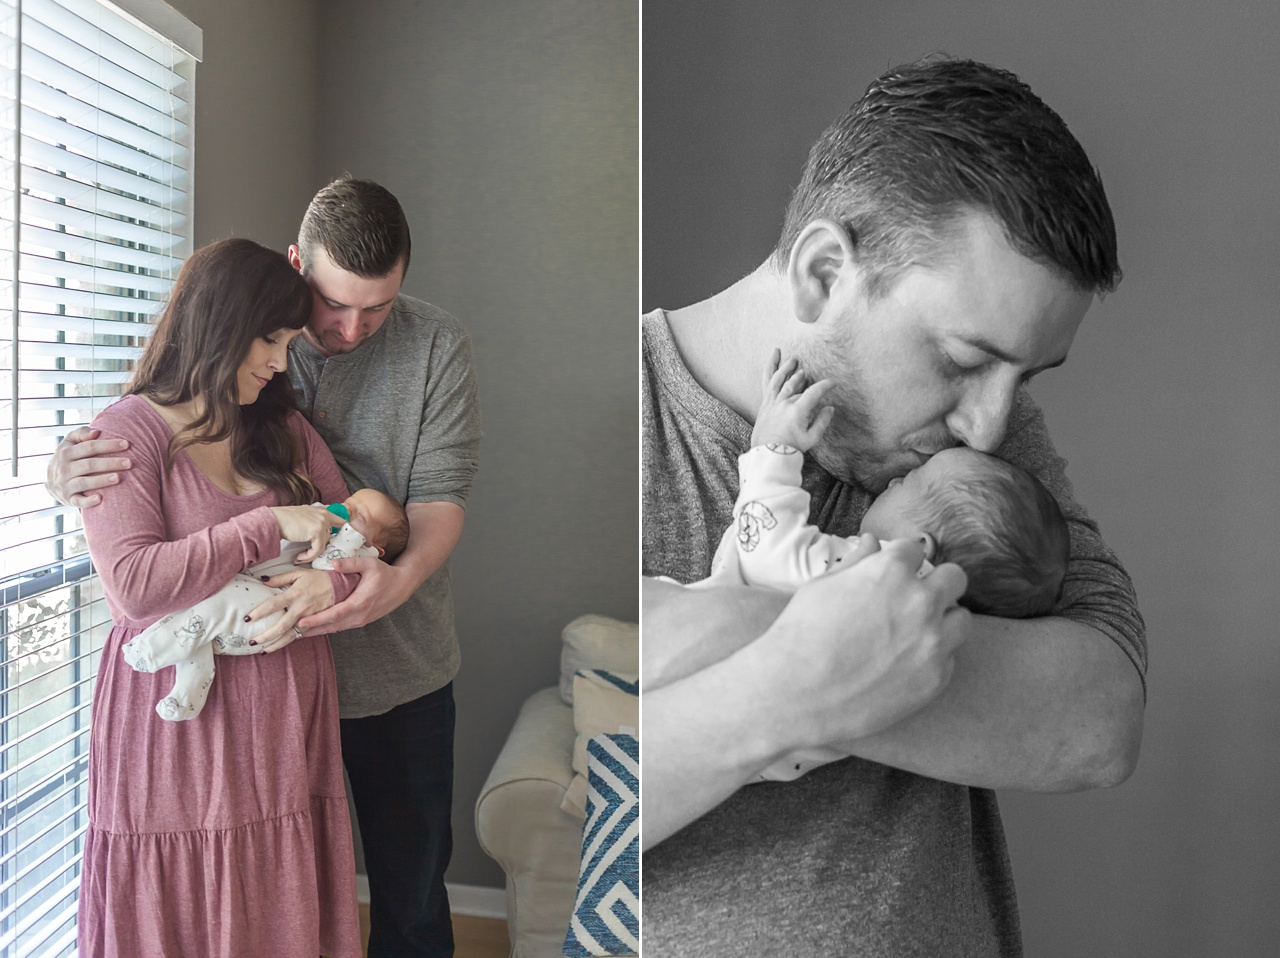 new father kisses infant son on forehead in the woodlands, texas